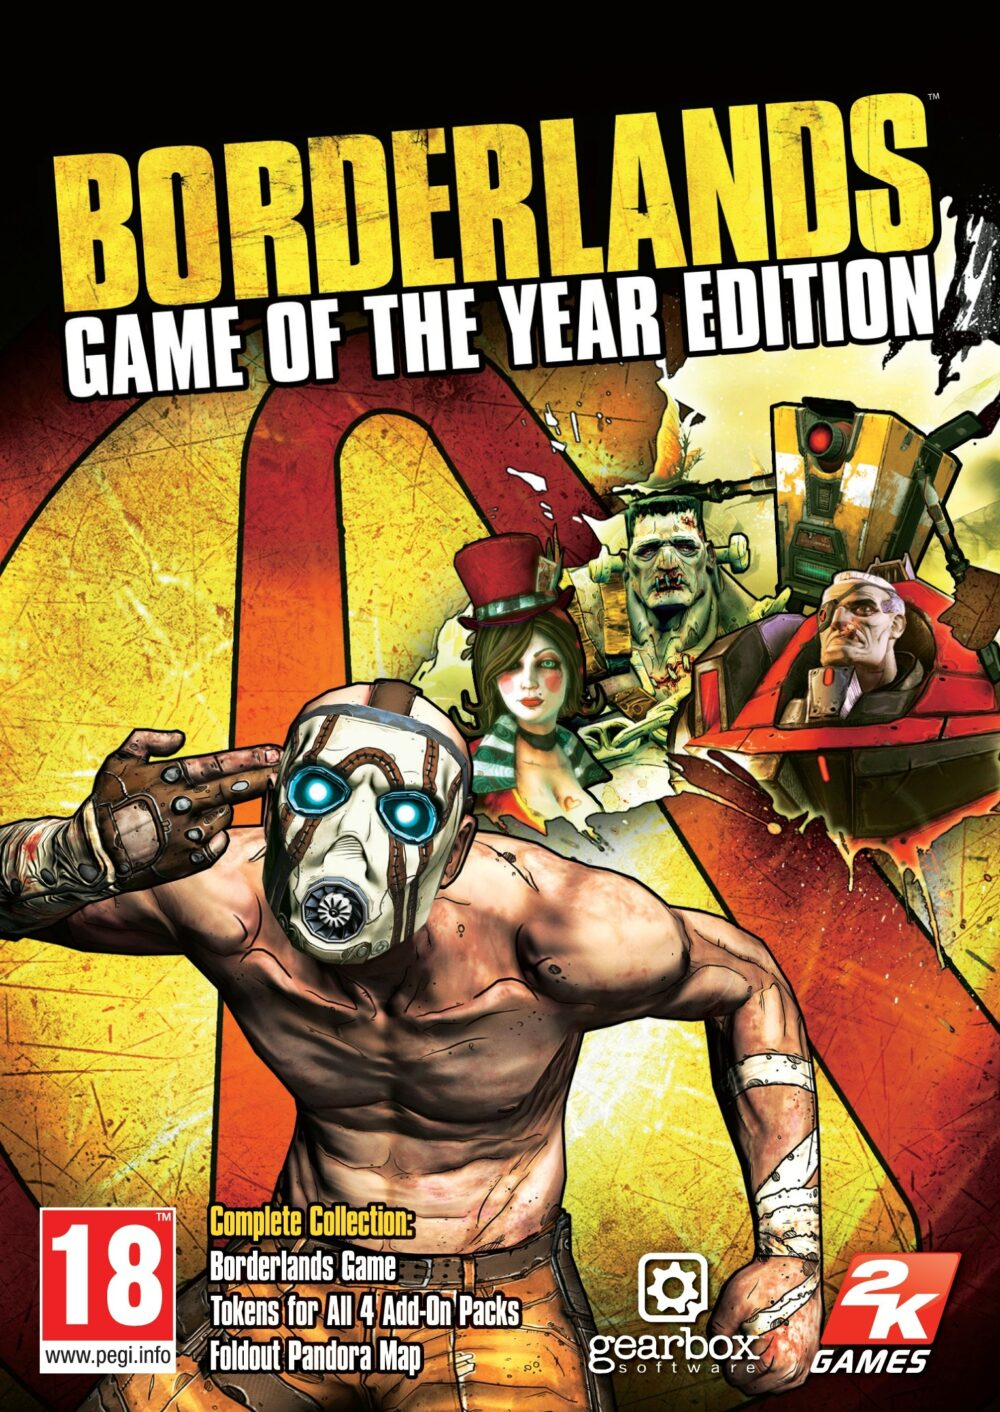 kevin-hart-in-trattative-per-il-film-borderlands-di-eli-roth-3